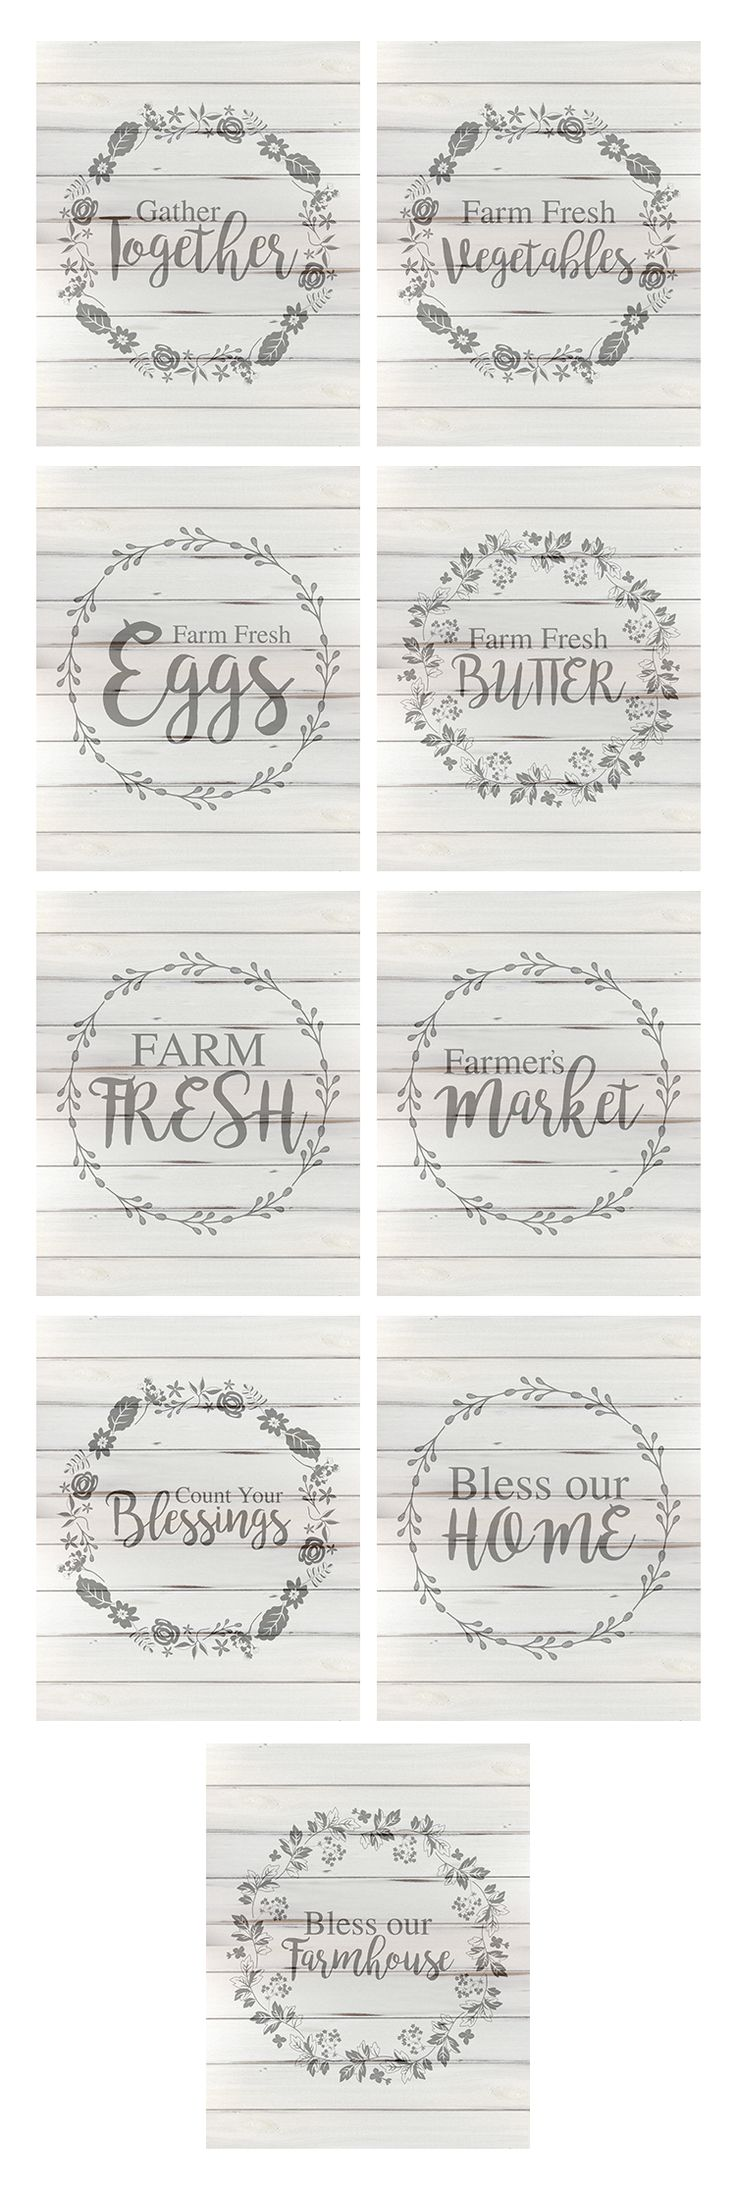 Free farmhouse style printables - perfect for framing and putting up on your wall! This collection of four free printables is offered in both blue and white